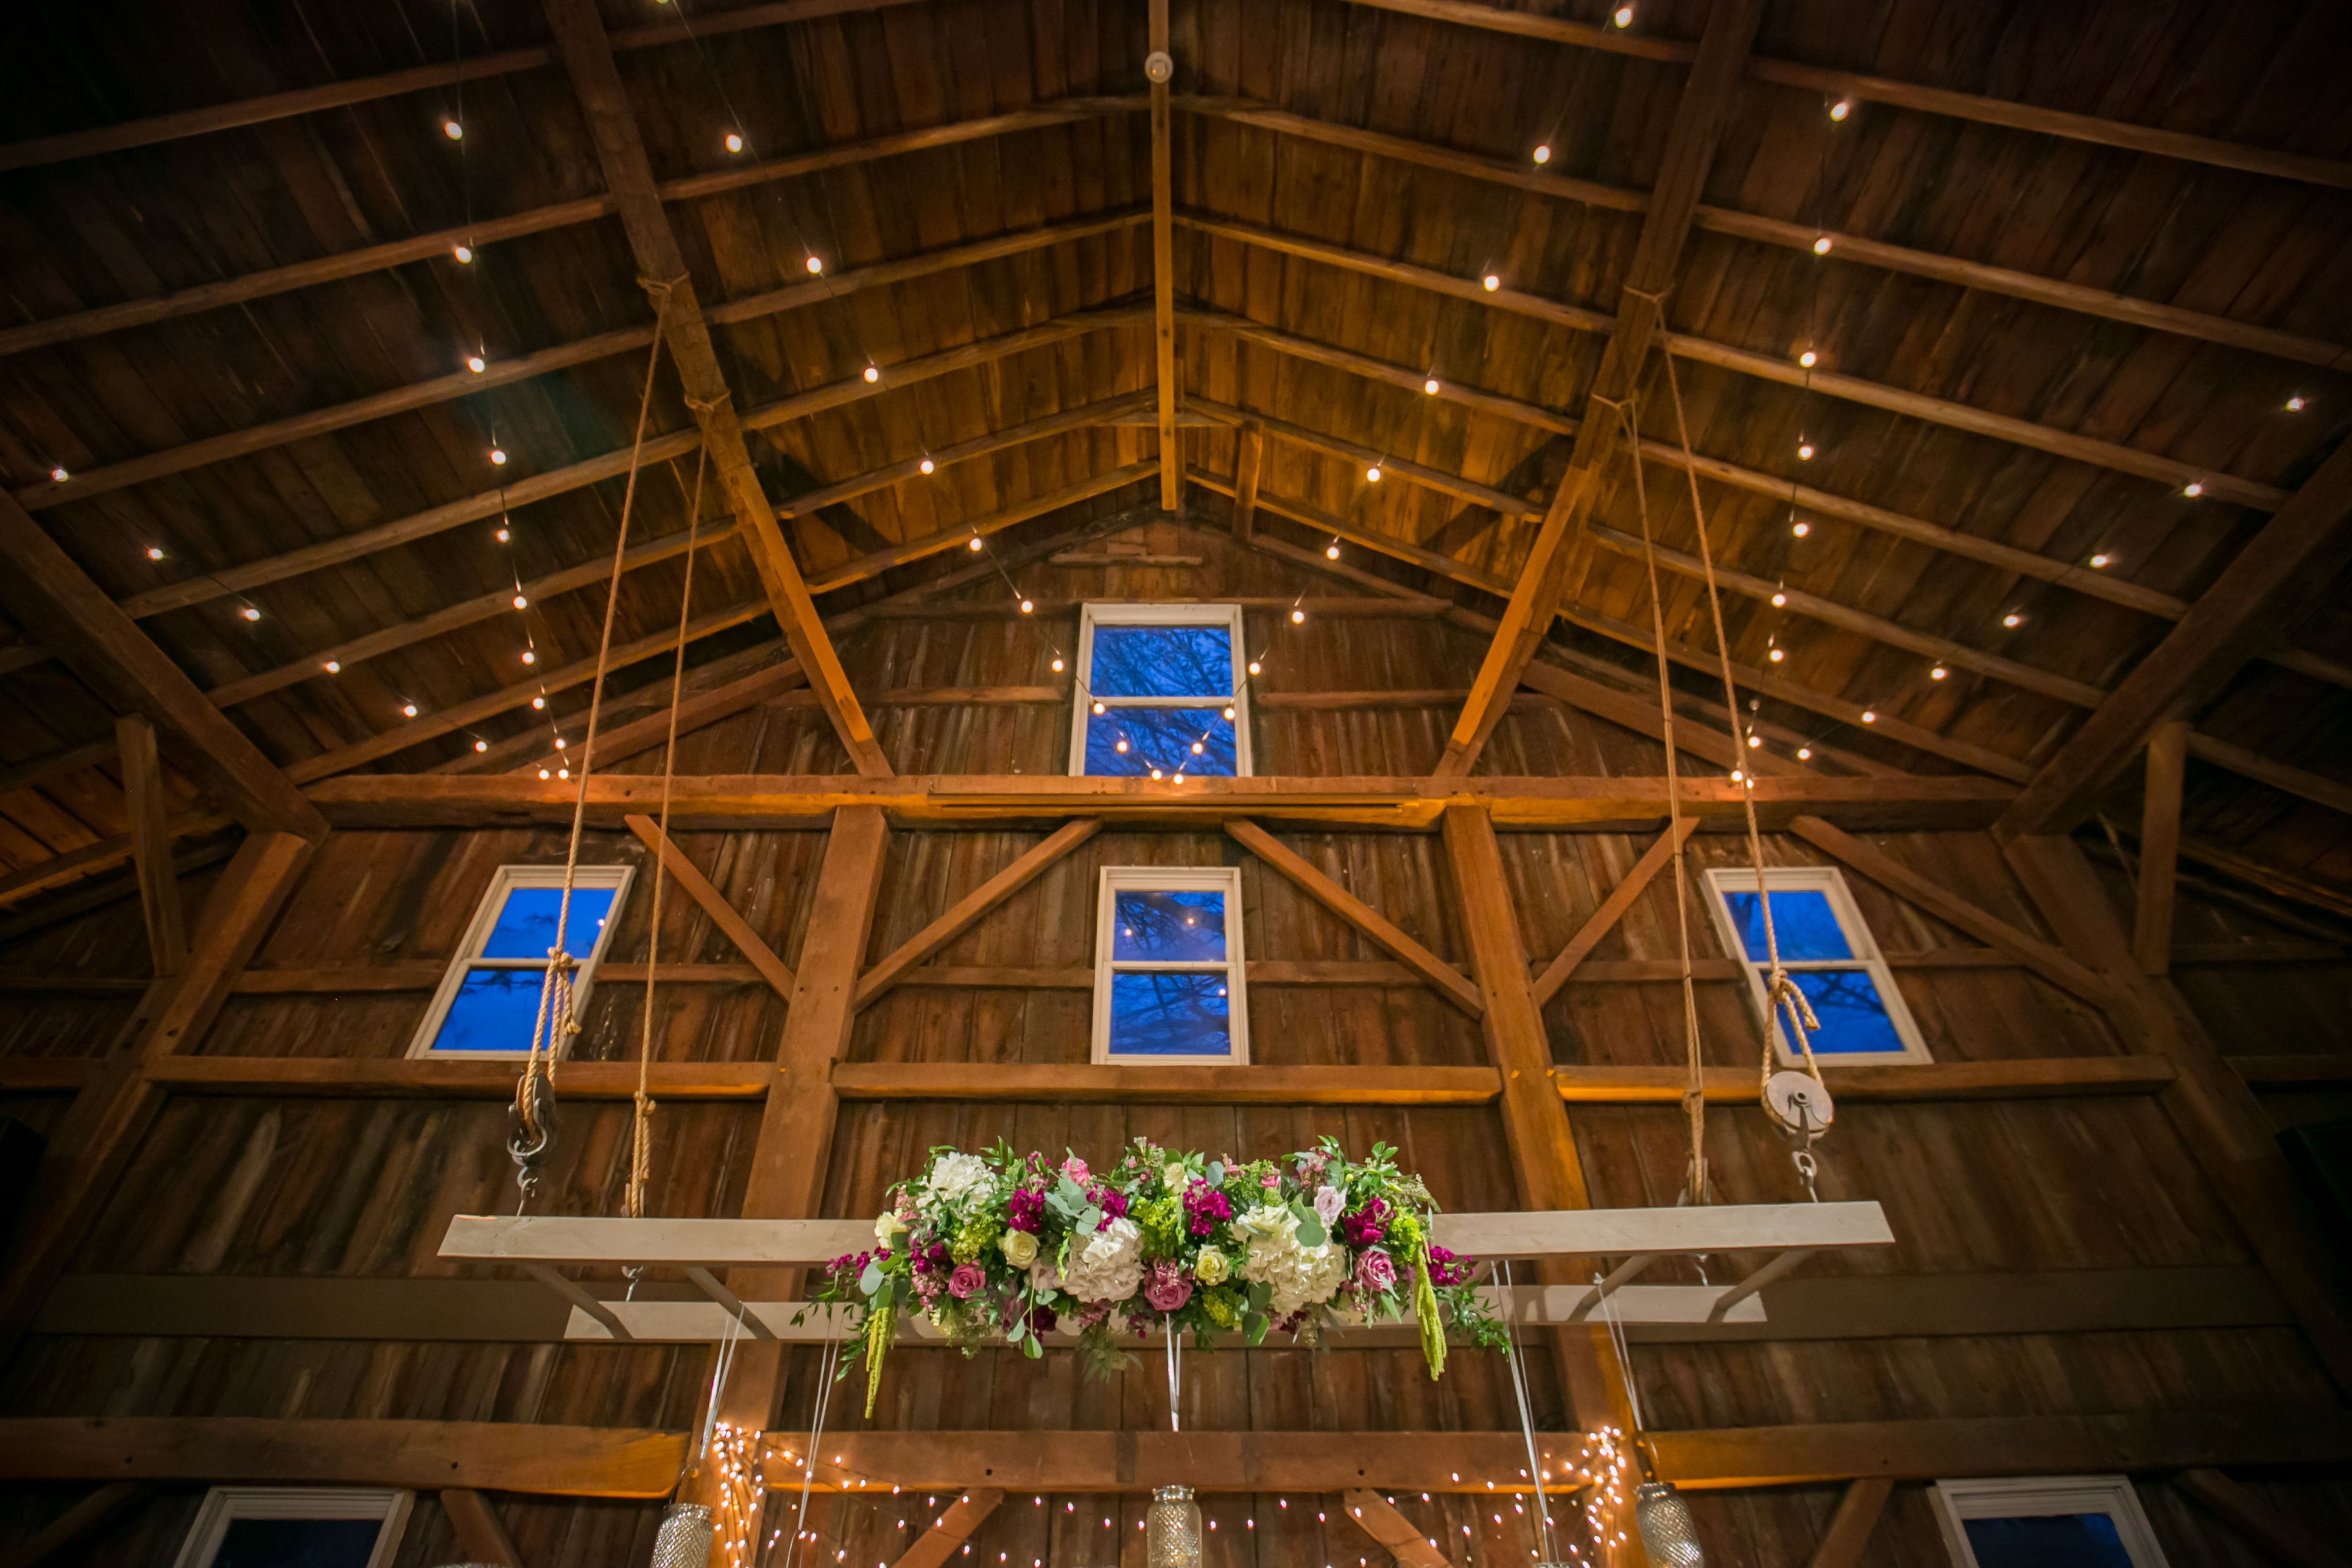 Ladder decor at the Mustard Seed Gardens | The Olde Barn at Mustard ...